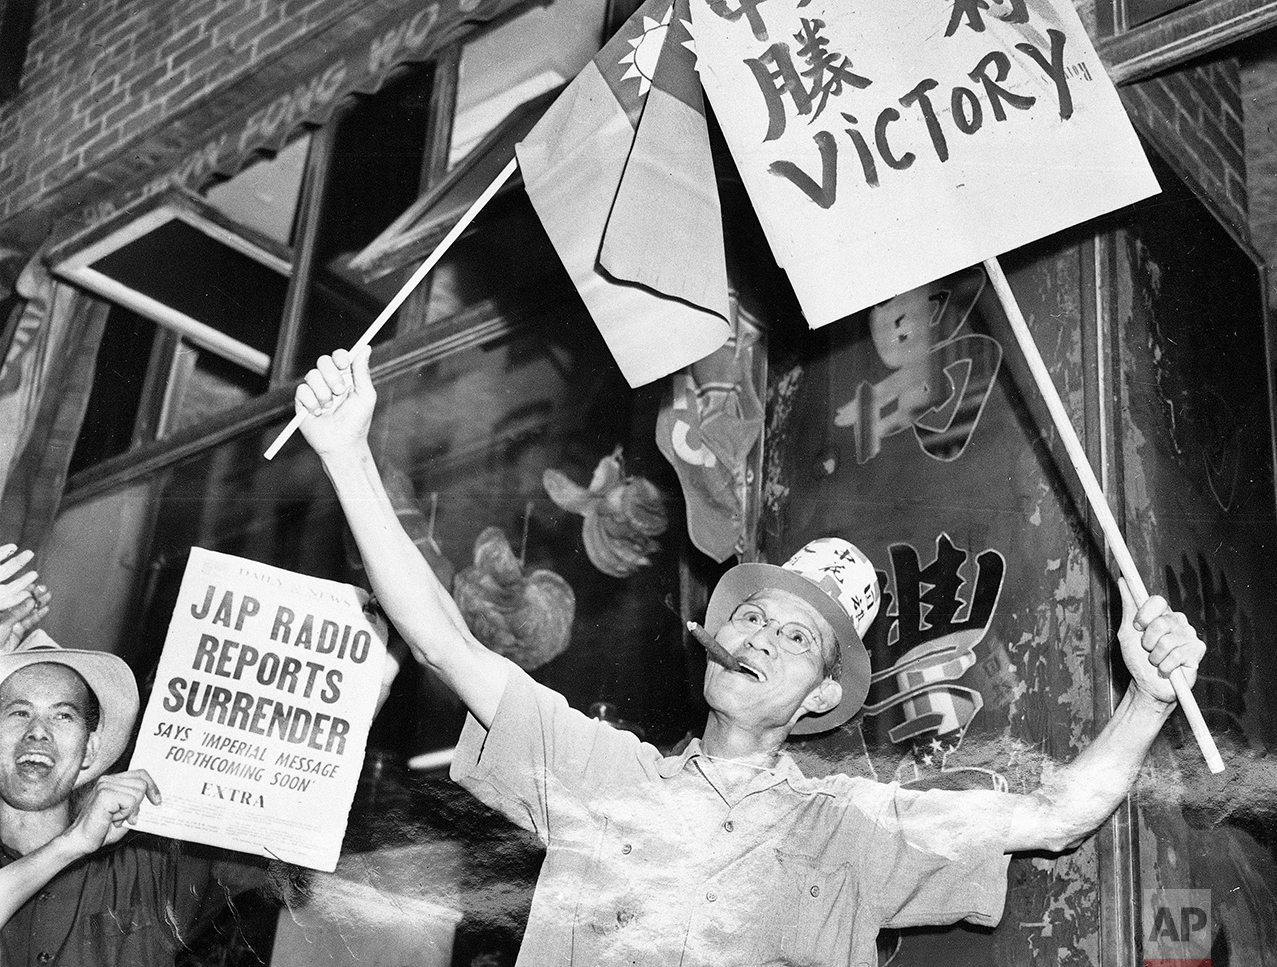 In this Aug. 14, 1945 photo, Chinese-Americans on Mott and Pell Streets in New York's Chinatown celebrate the Japanese surrender on V-J Day. In 1868, the U.S. signed a treaty encouraging Chinese migration; 24 years later, the Chinese Exclusion Act turned away immigrants from what was even then the world's most populous nation. (AP Photo/Tom Fitzsimmons)